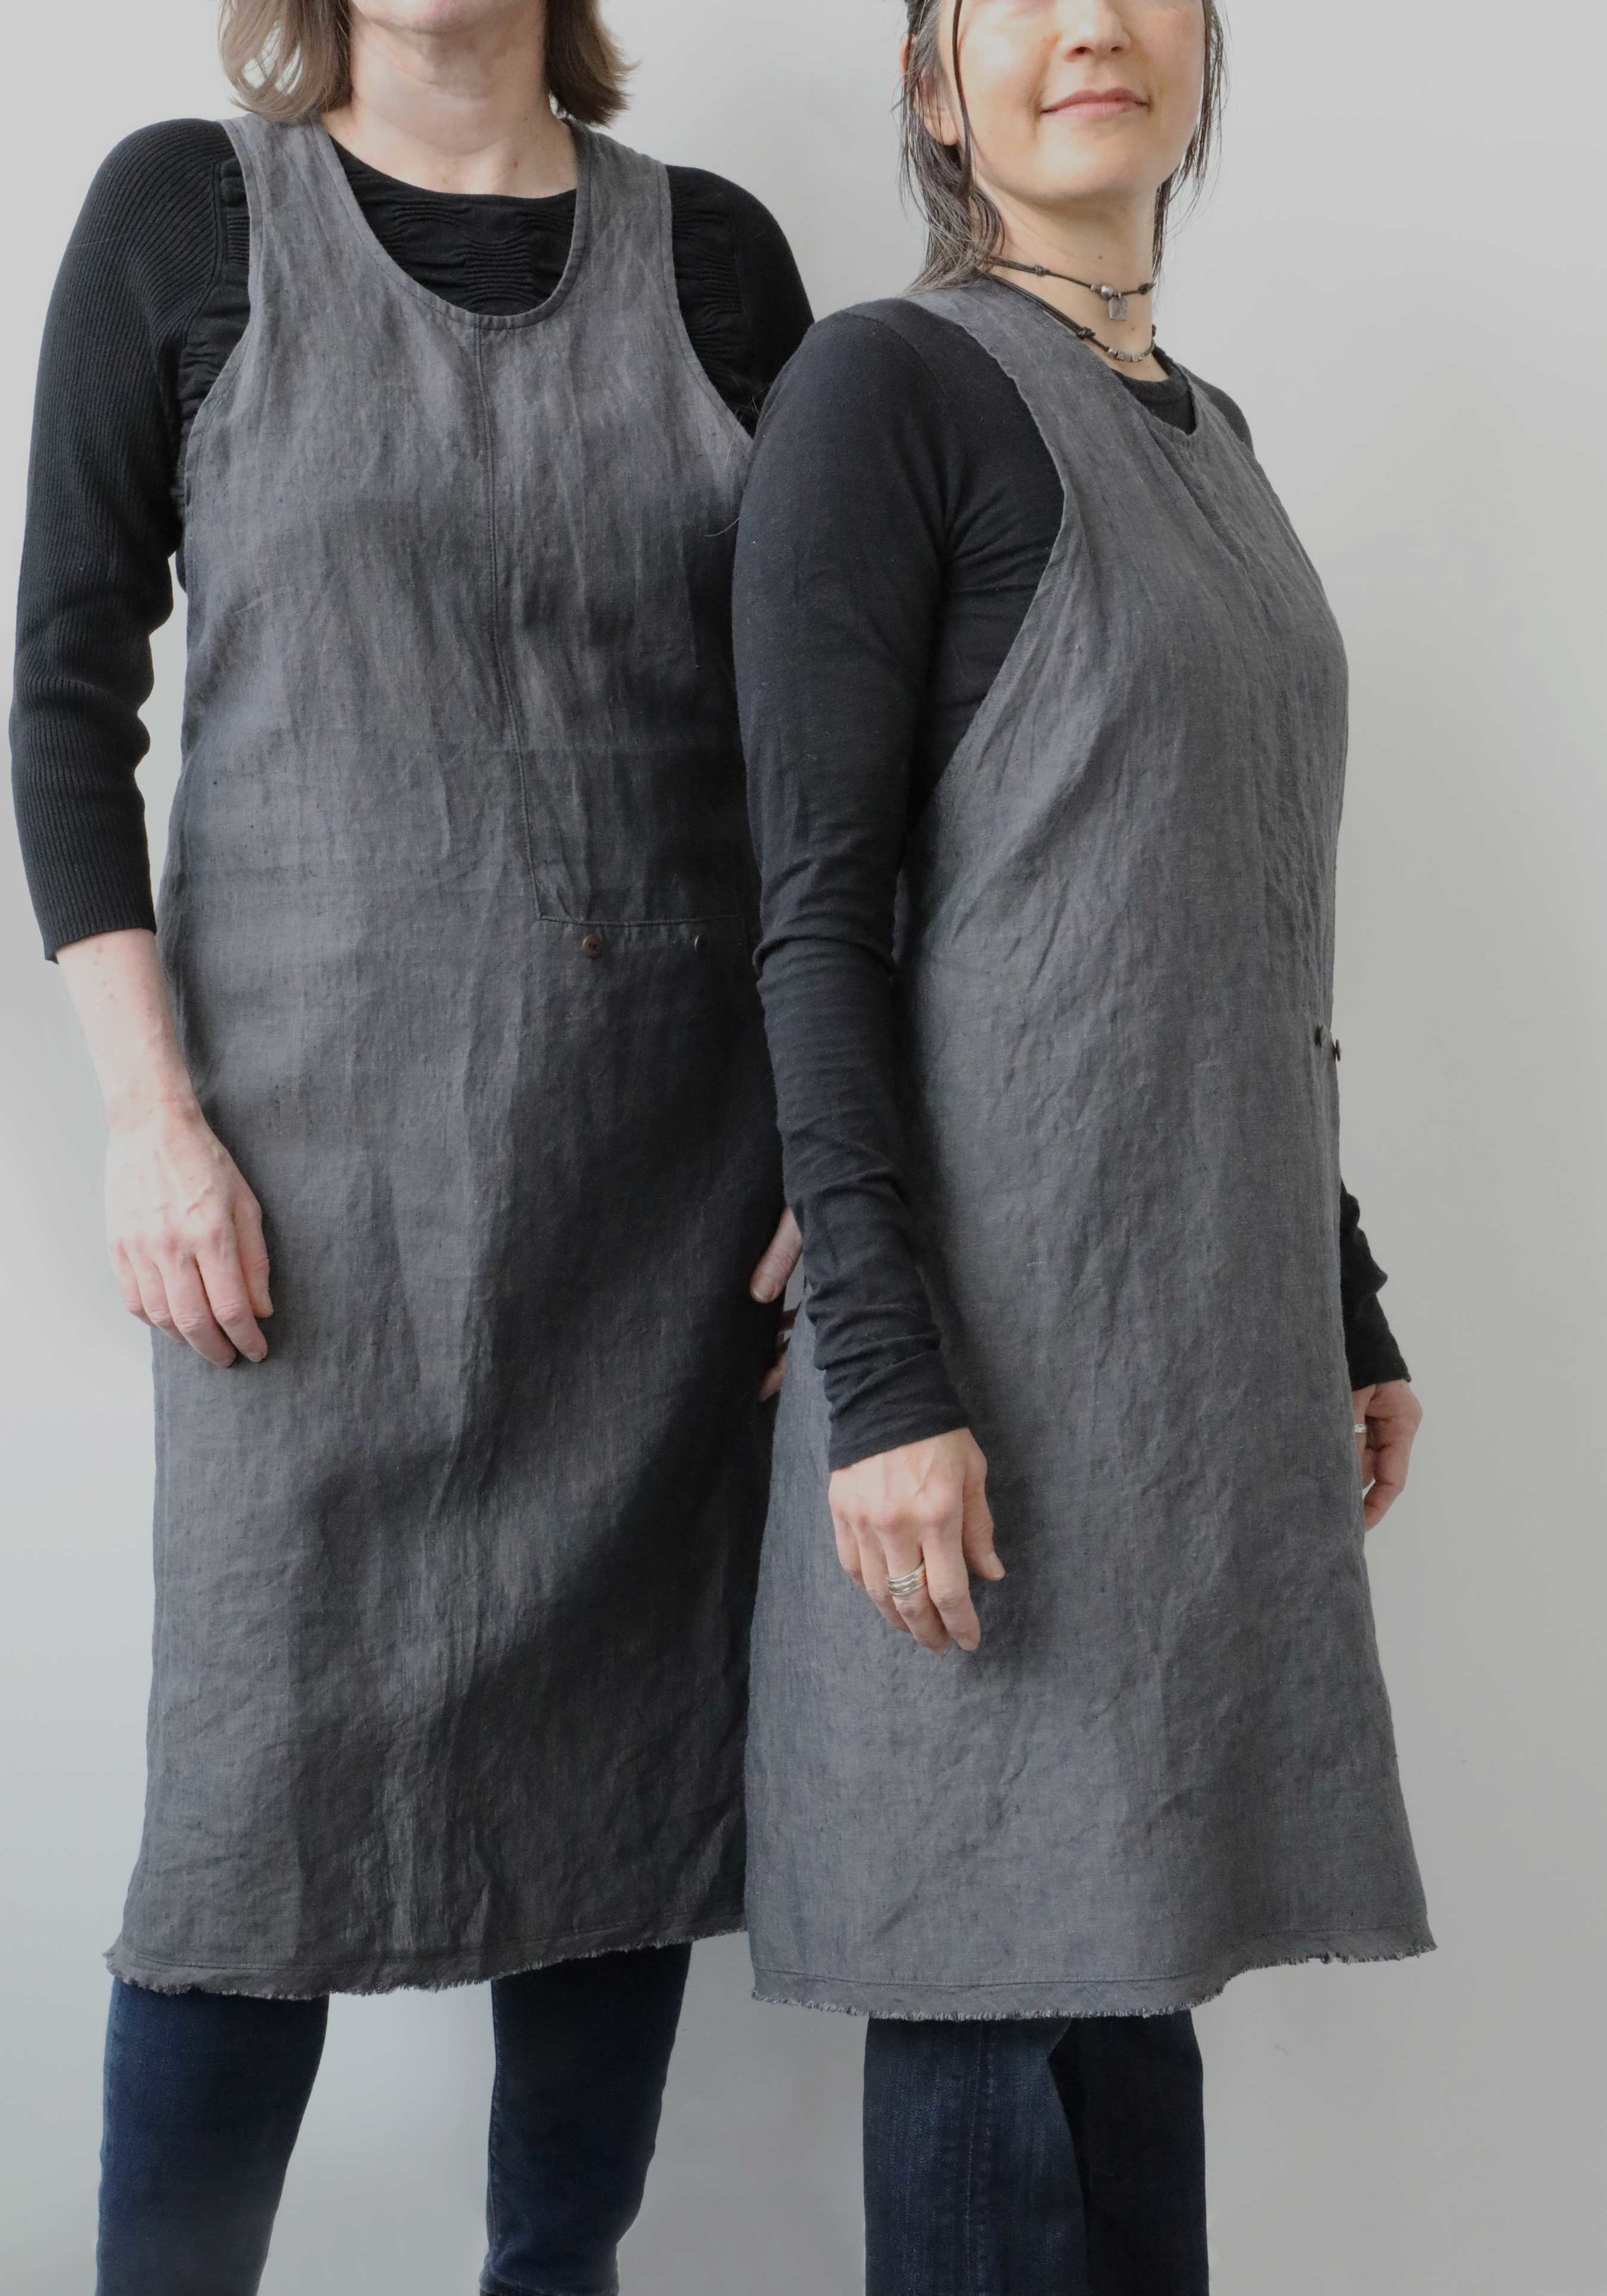 """Thread & Whisk's Grace Apron is now offered in a petite size, for those of us who are smaller in stature. Model at left is 5' 8"""", model at right is 5' 3""""."""